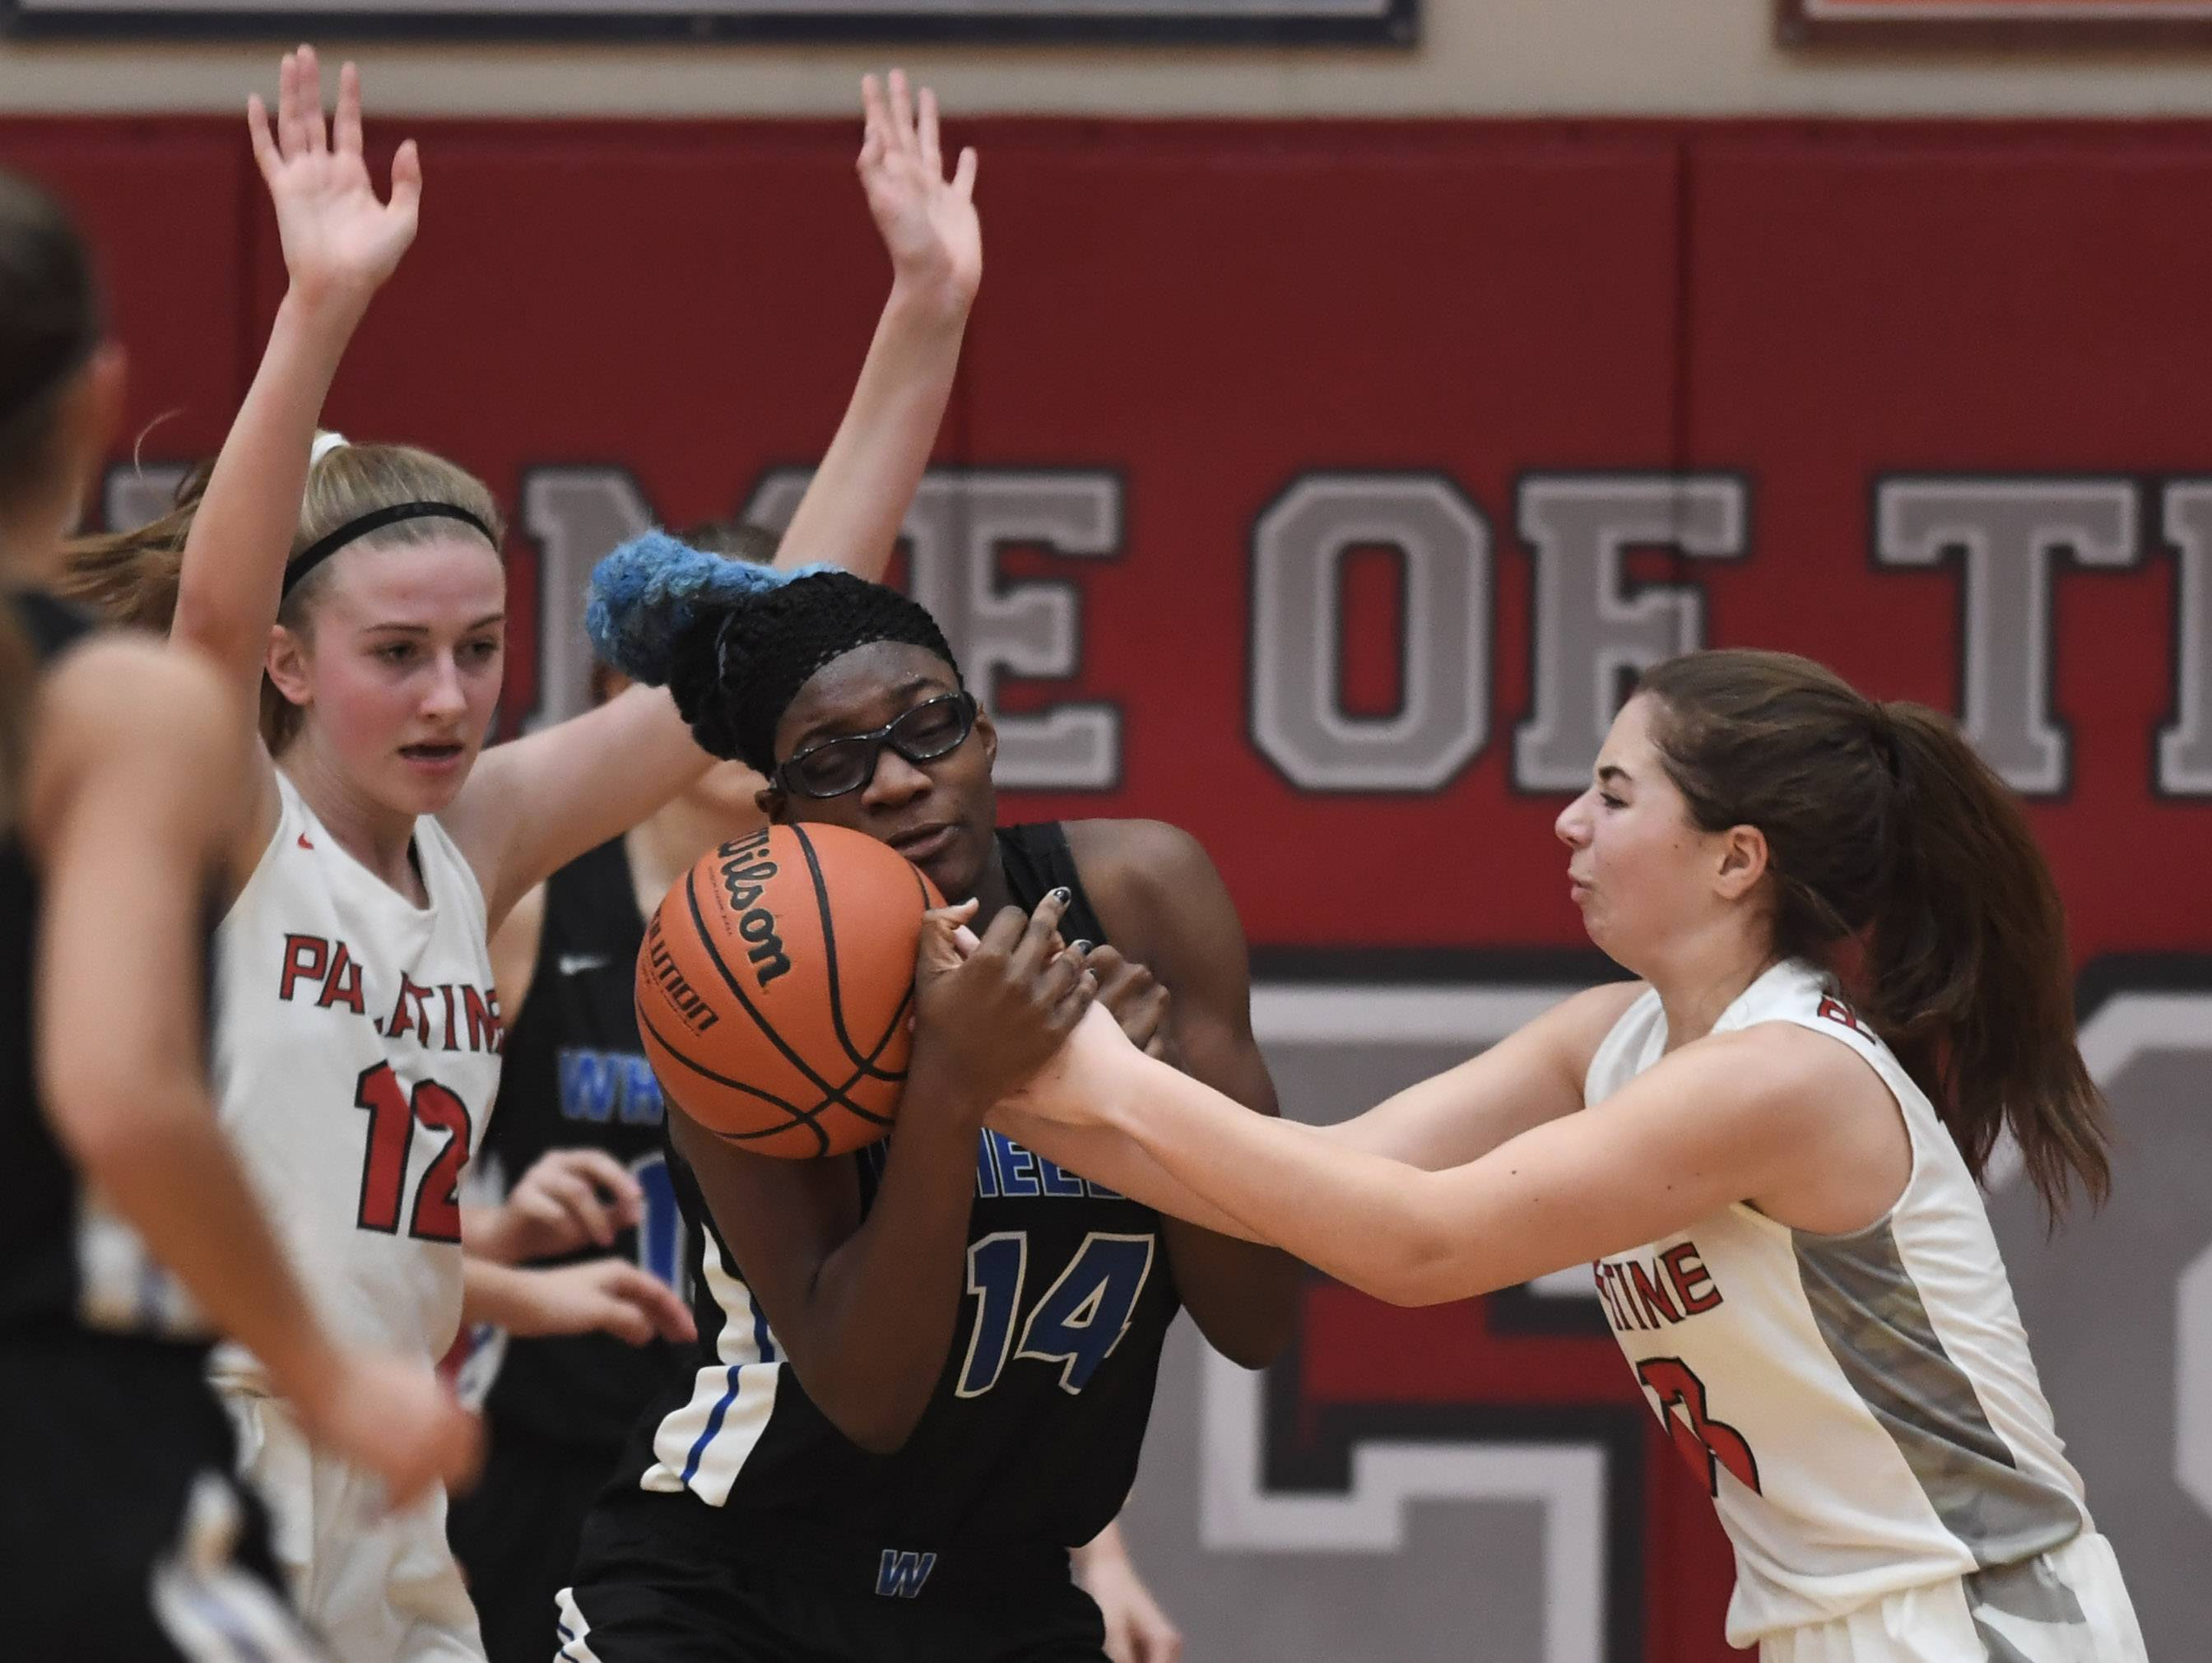 Wheeling's Nosa Igiehon tries to control the ball as Palatine's Julianna Mandarino, right, plays tight defense during Tuesday's game at Palatine.